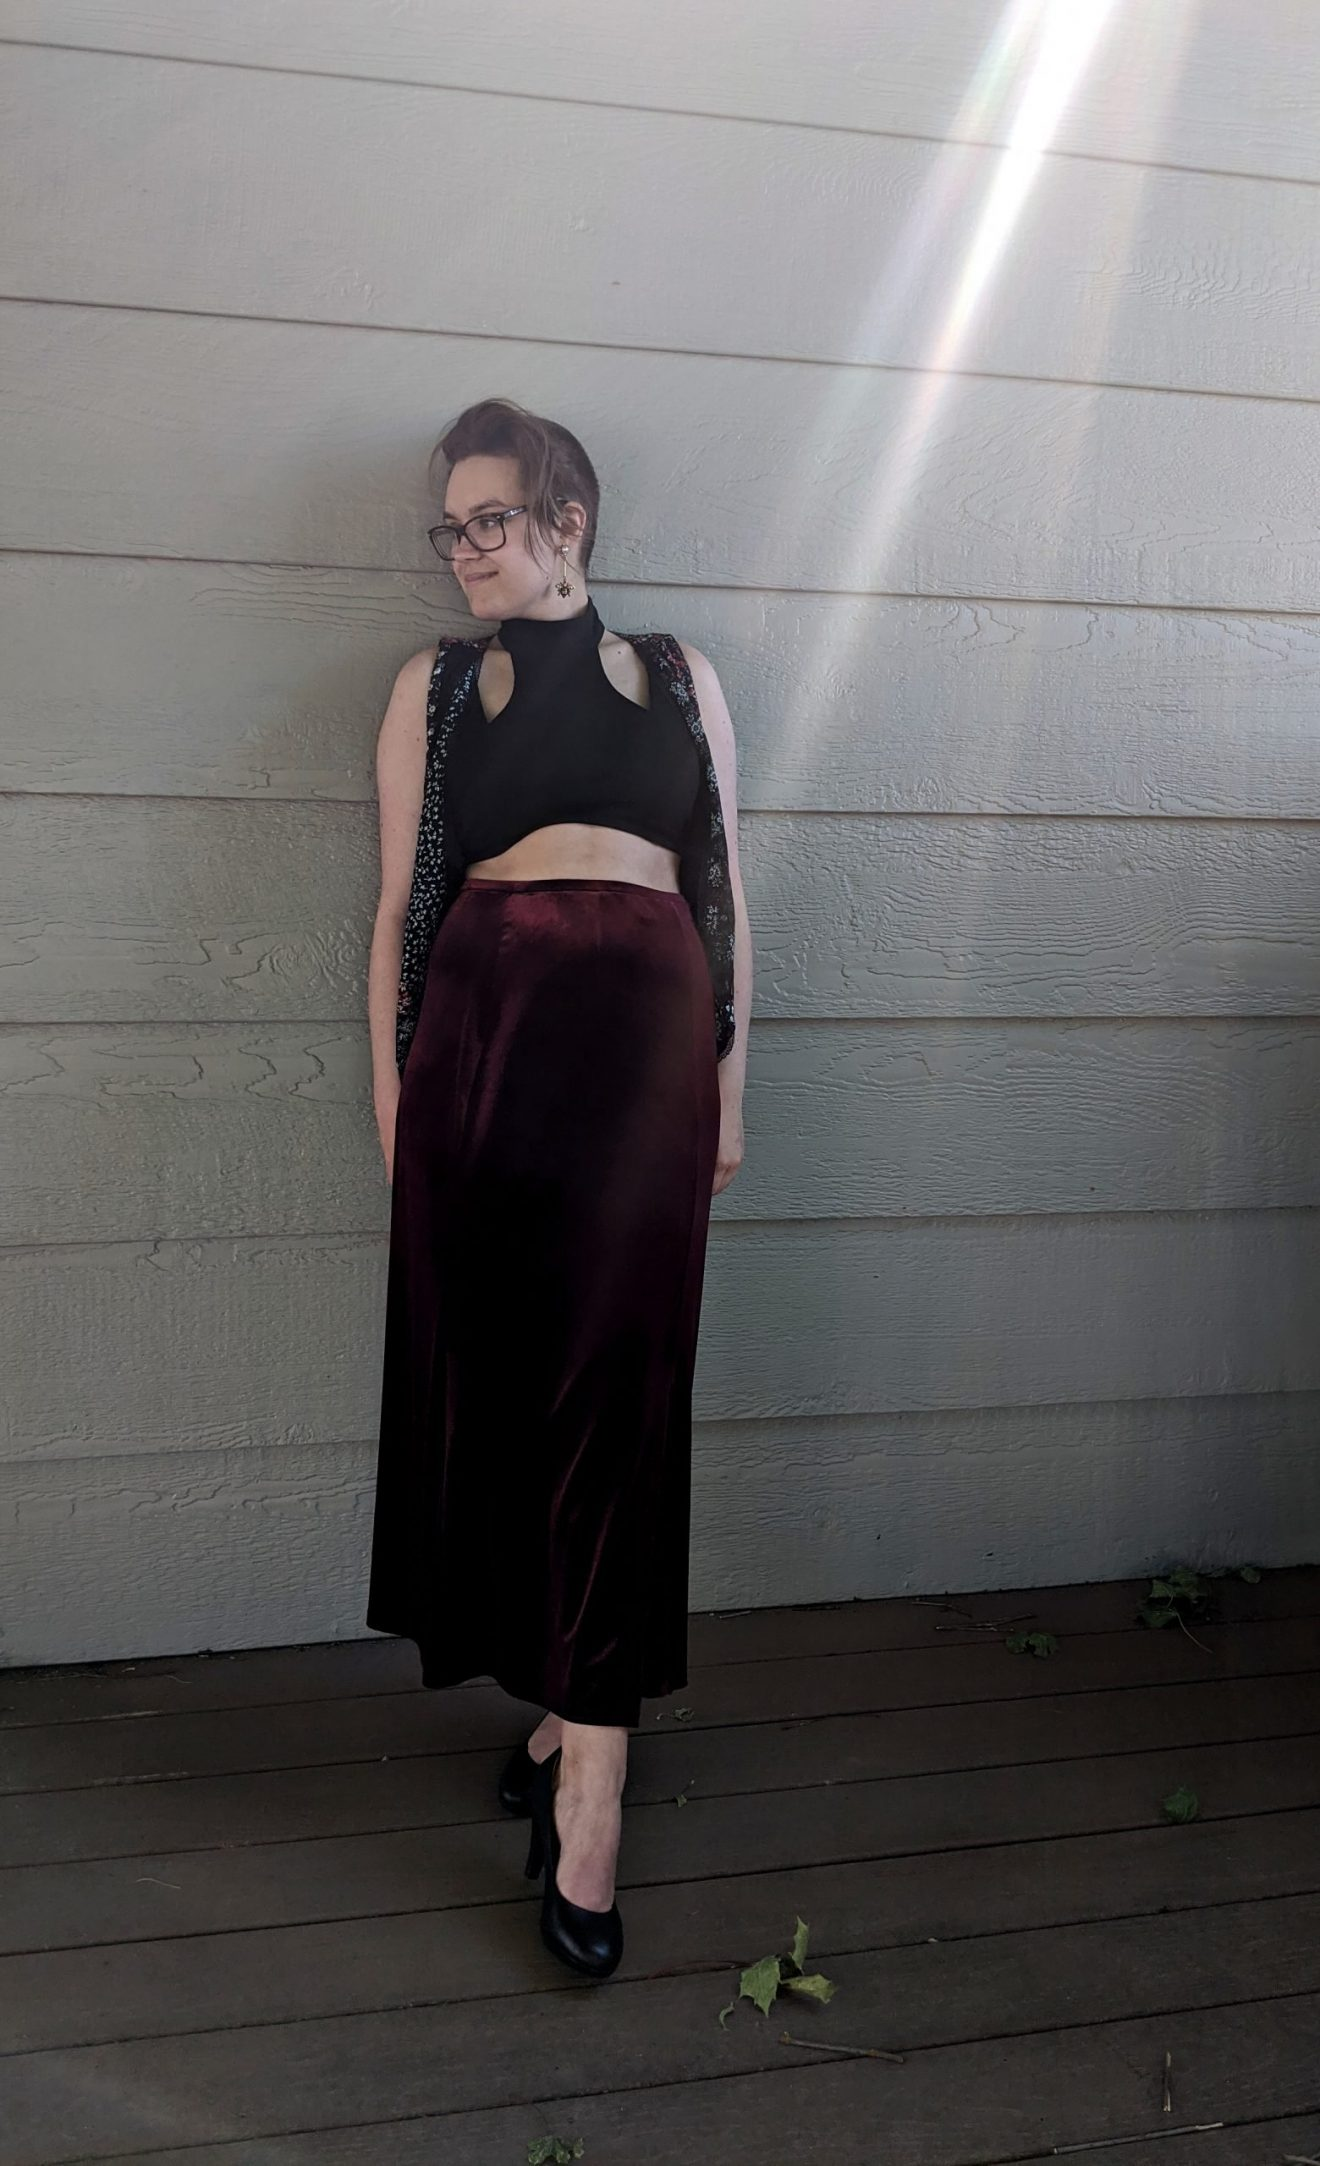 I Feared Waking Up Alissa Ackerman Story Behind The Cloth fashion blog vintage antique witchy bohemian outfit 11 scaled